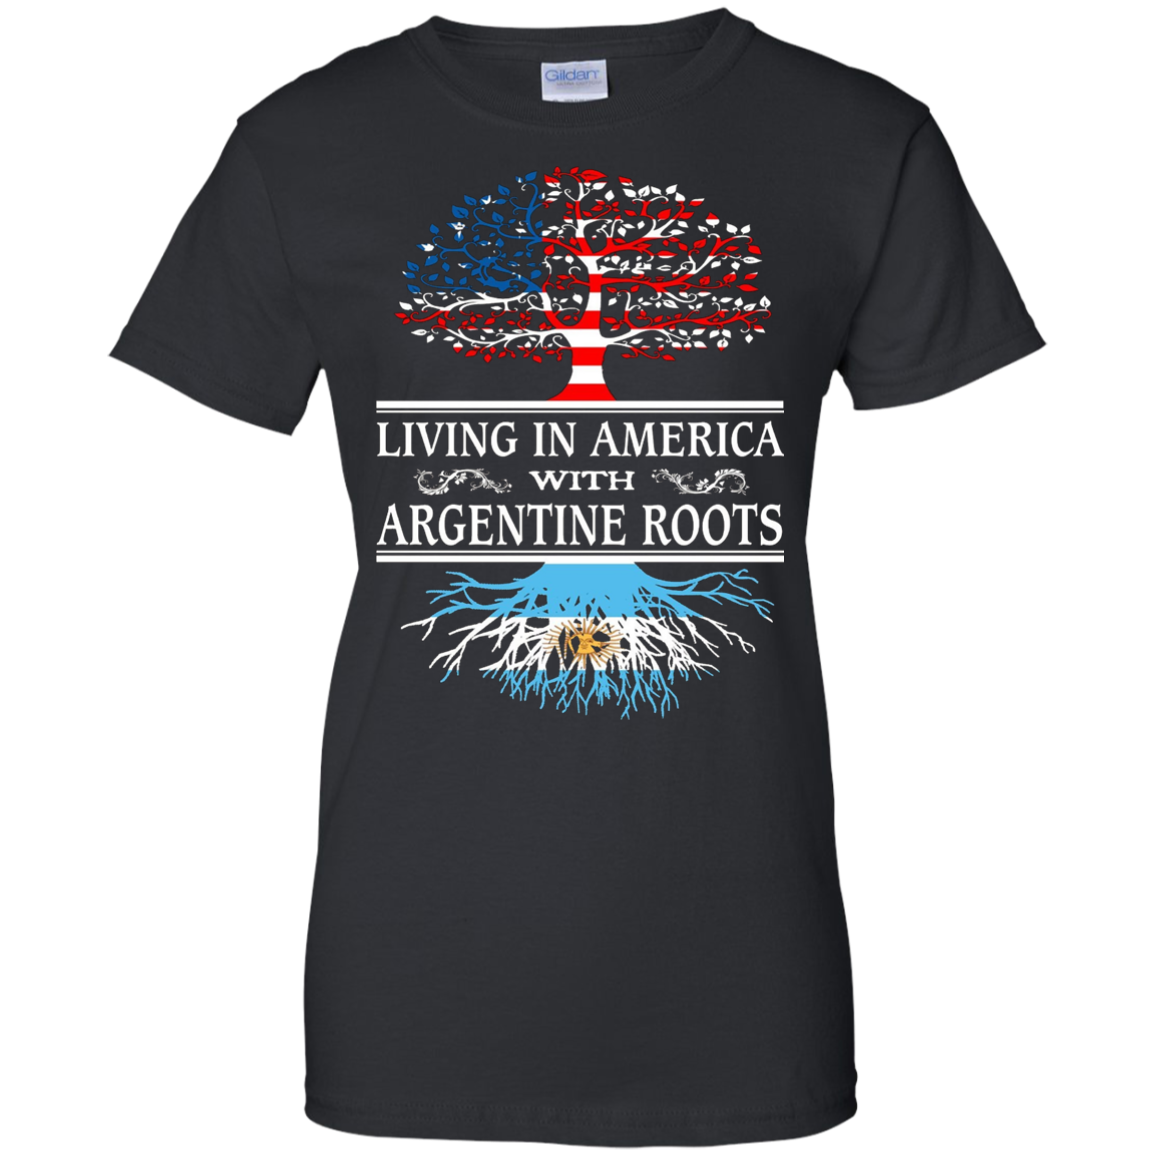 Living in America Argentine Roots - Argentina Flag Shirt